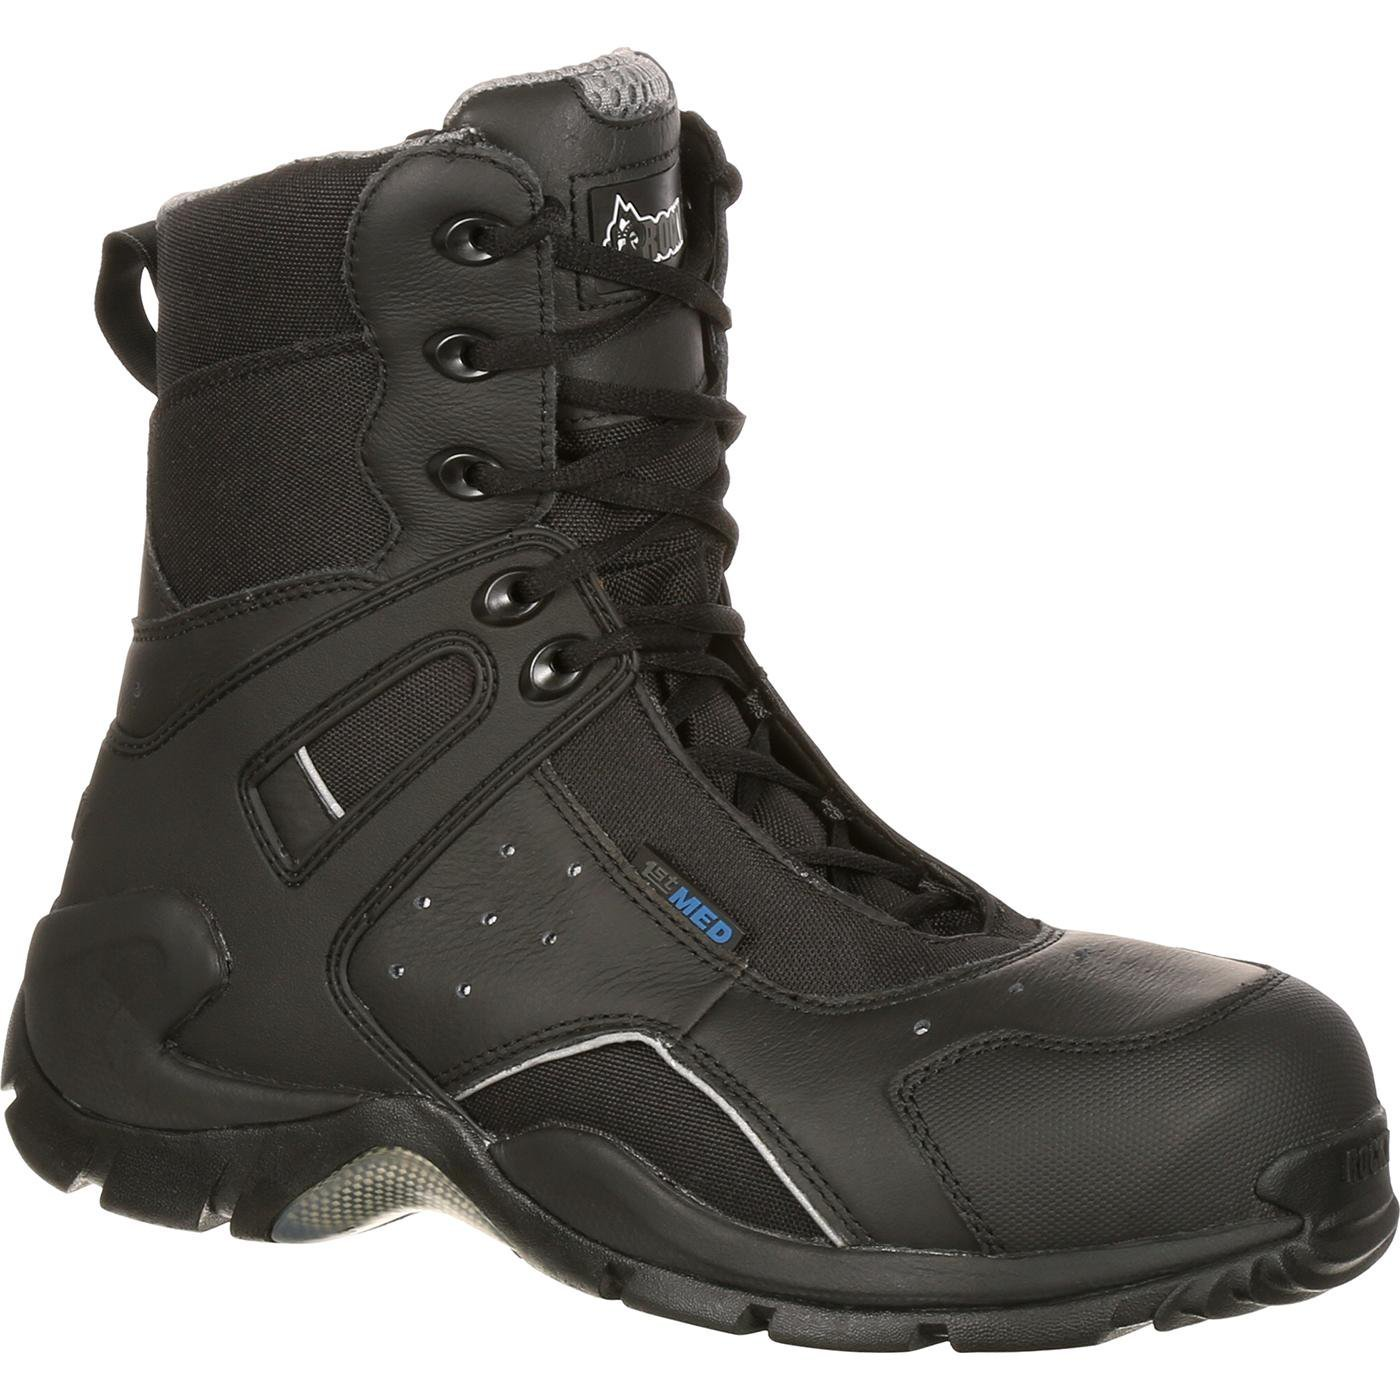 Rocky Men's 8 Inch 1st Med 911-113 Puncture Resistant Work Boot,Black,11.5 W US by ROCKY